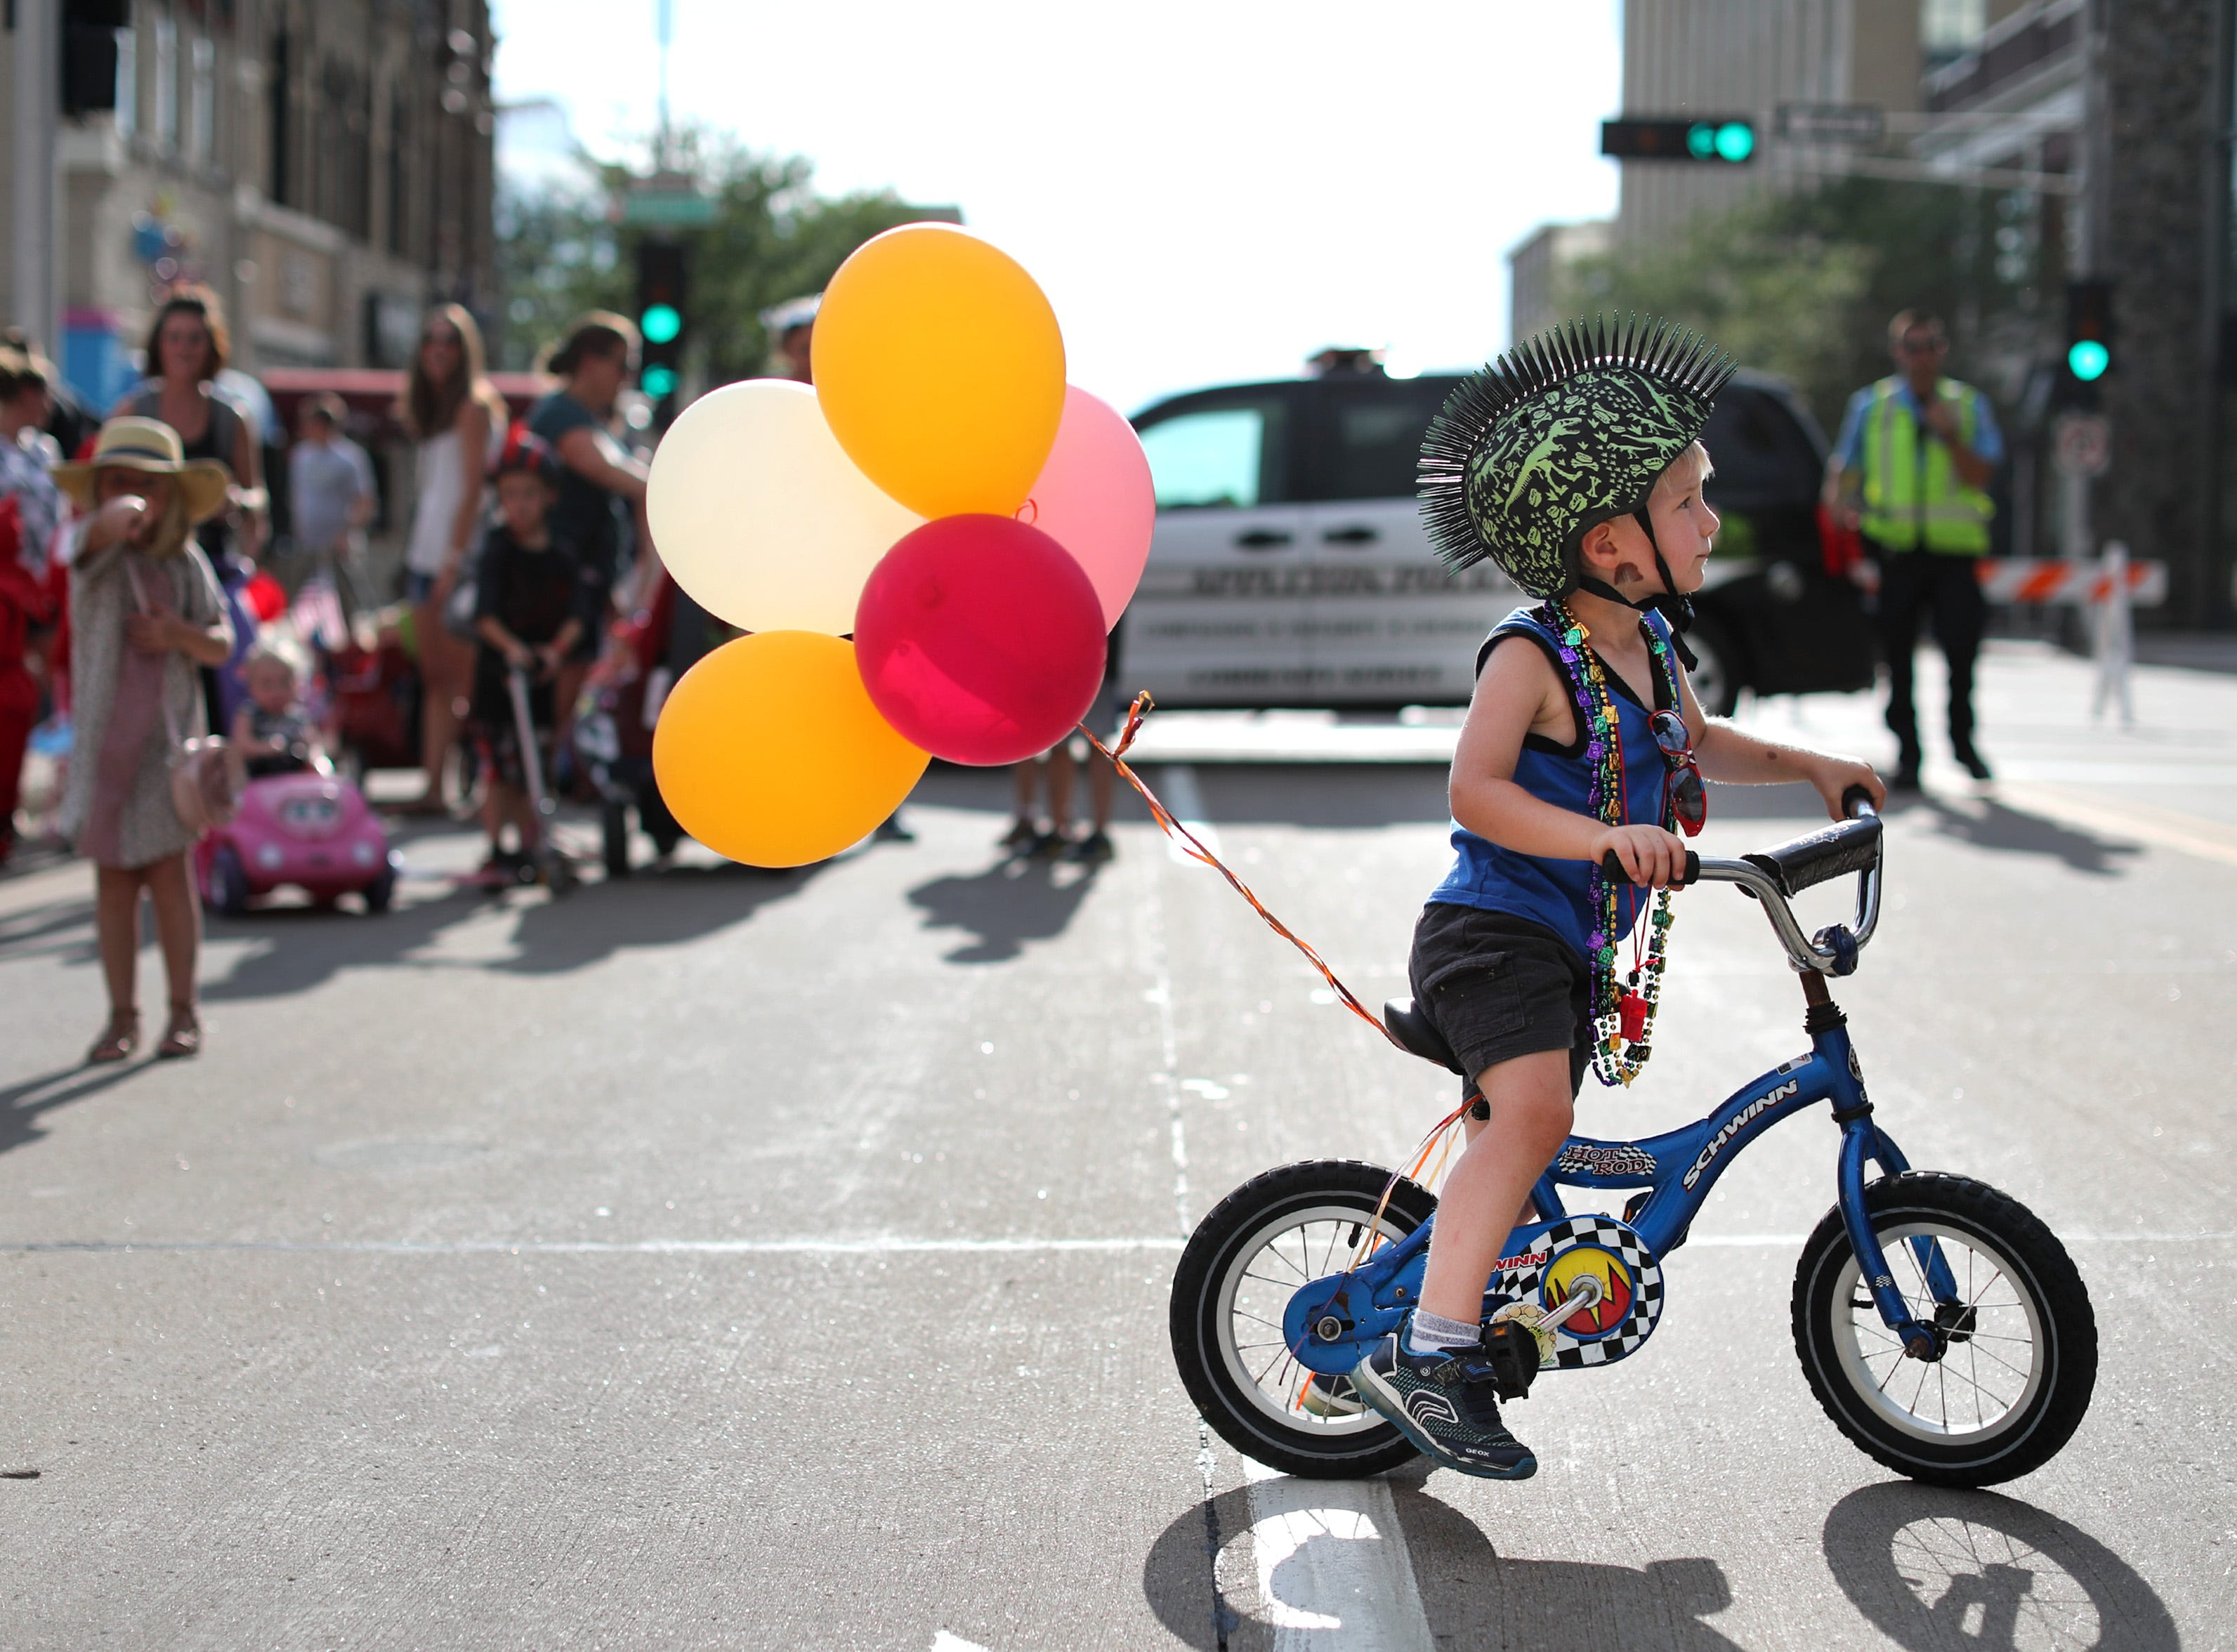 Hugo Wells, 3, of Appleton, gets ready for the 10th annual ChildrenÕs Parade Wednesday, July 25, 2018, in Appleton, Wis. Danny Damiani/USA TODAY NETWORK-Wisconsin